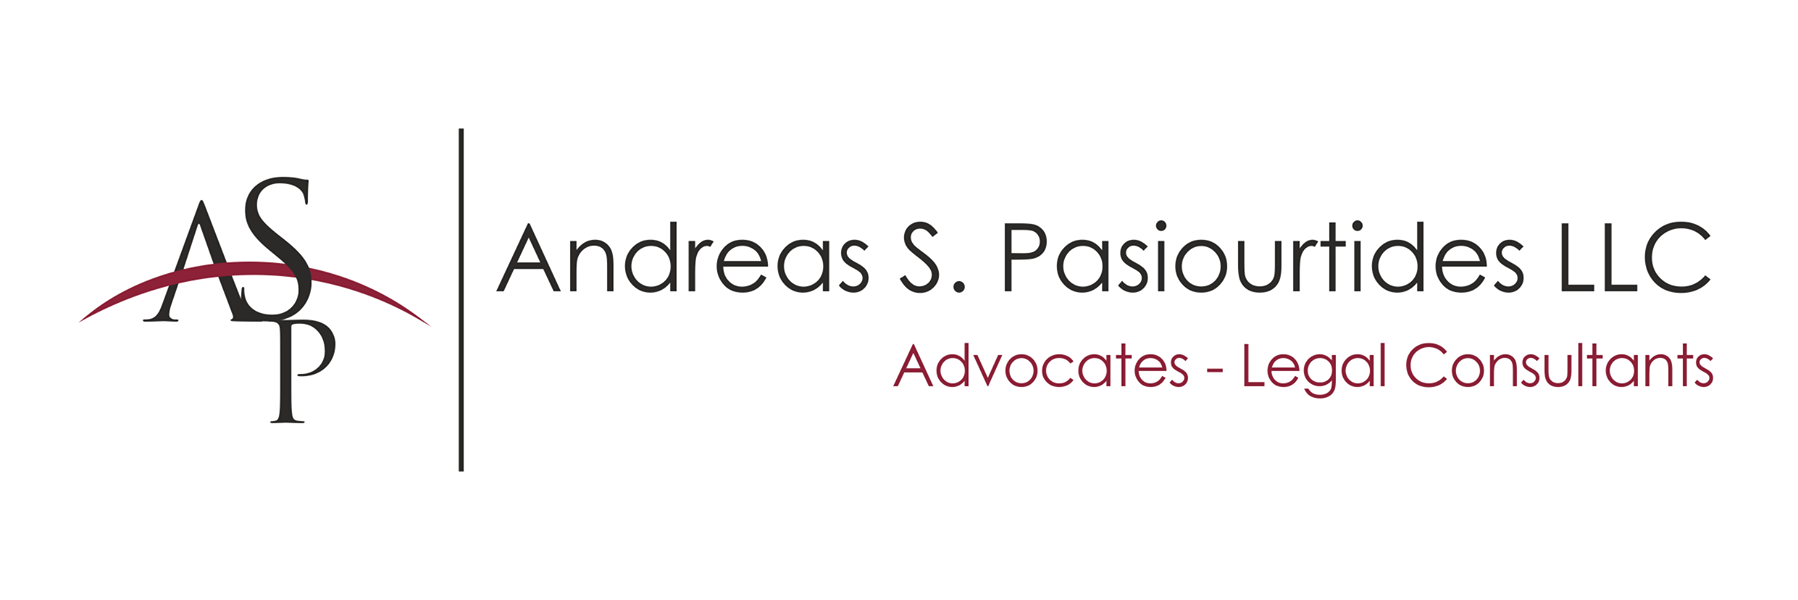 Andreas S. Pasiourtides LLC  Advocates - Legal Consultants Cover Image on XploreCyprus